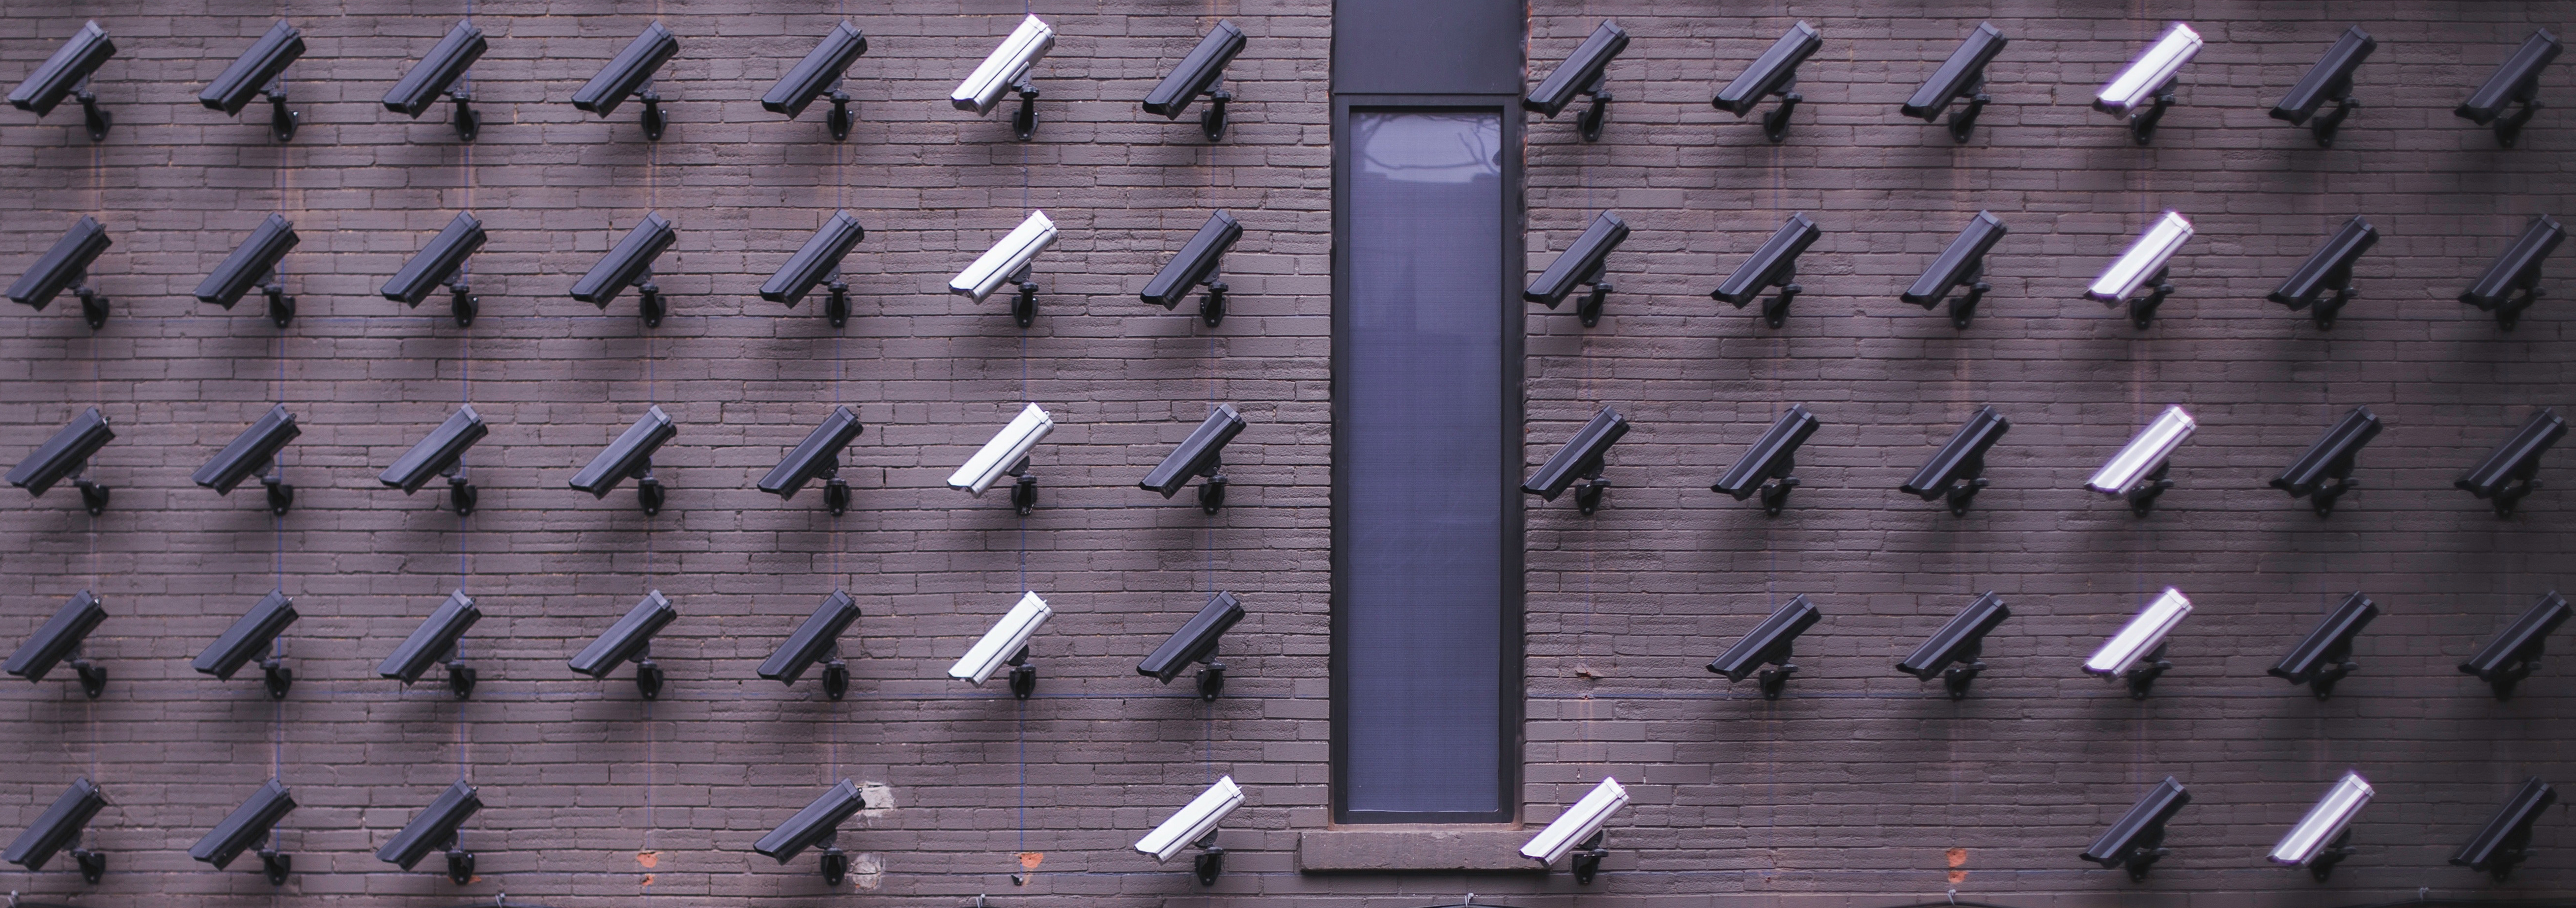 how companies protect themselves blog image